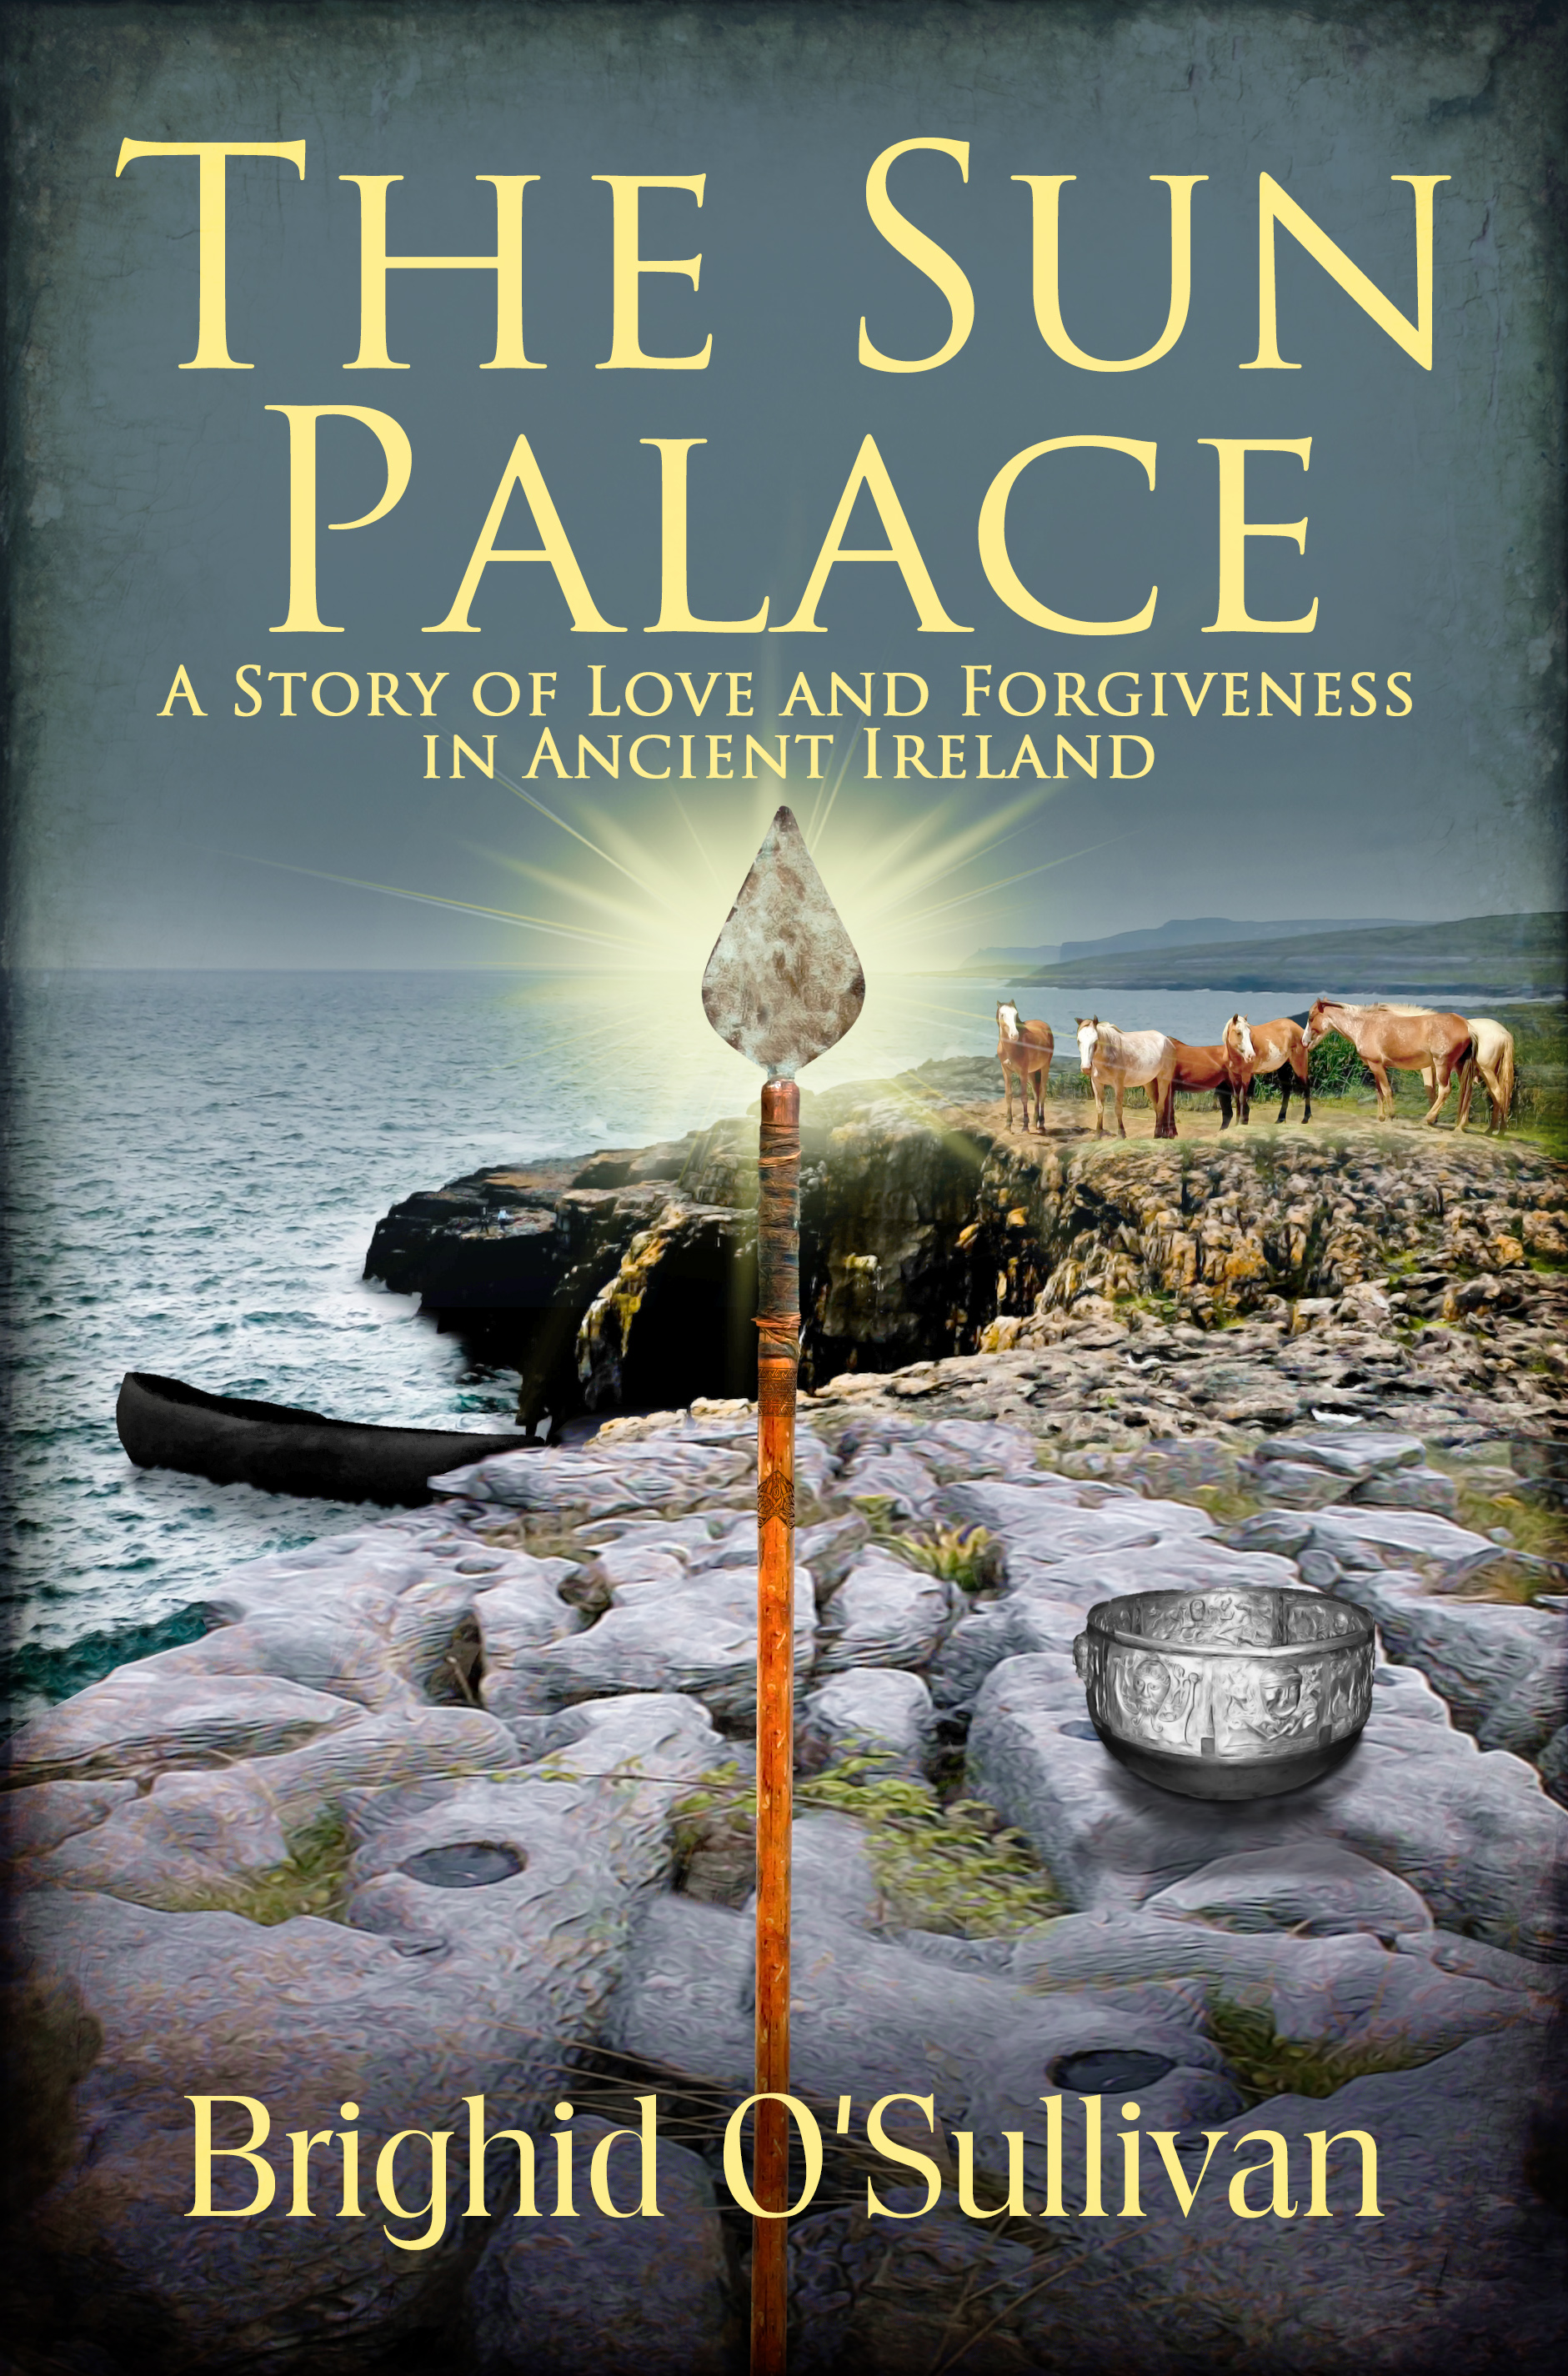 The Sun Palace by Brighid O'Sullivan